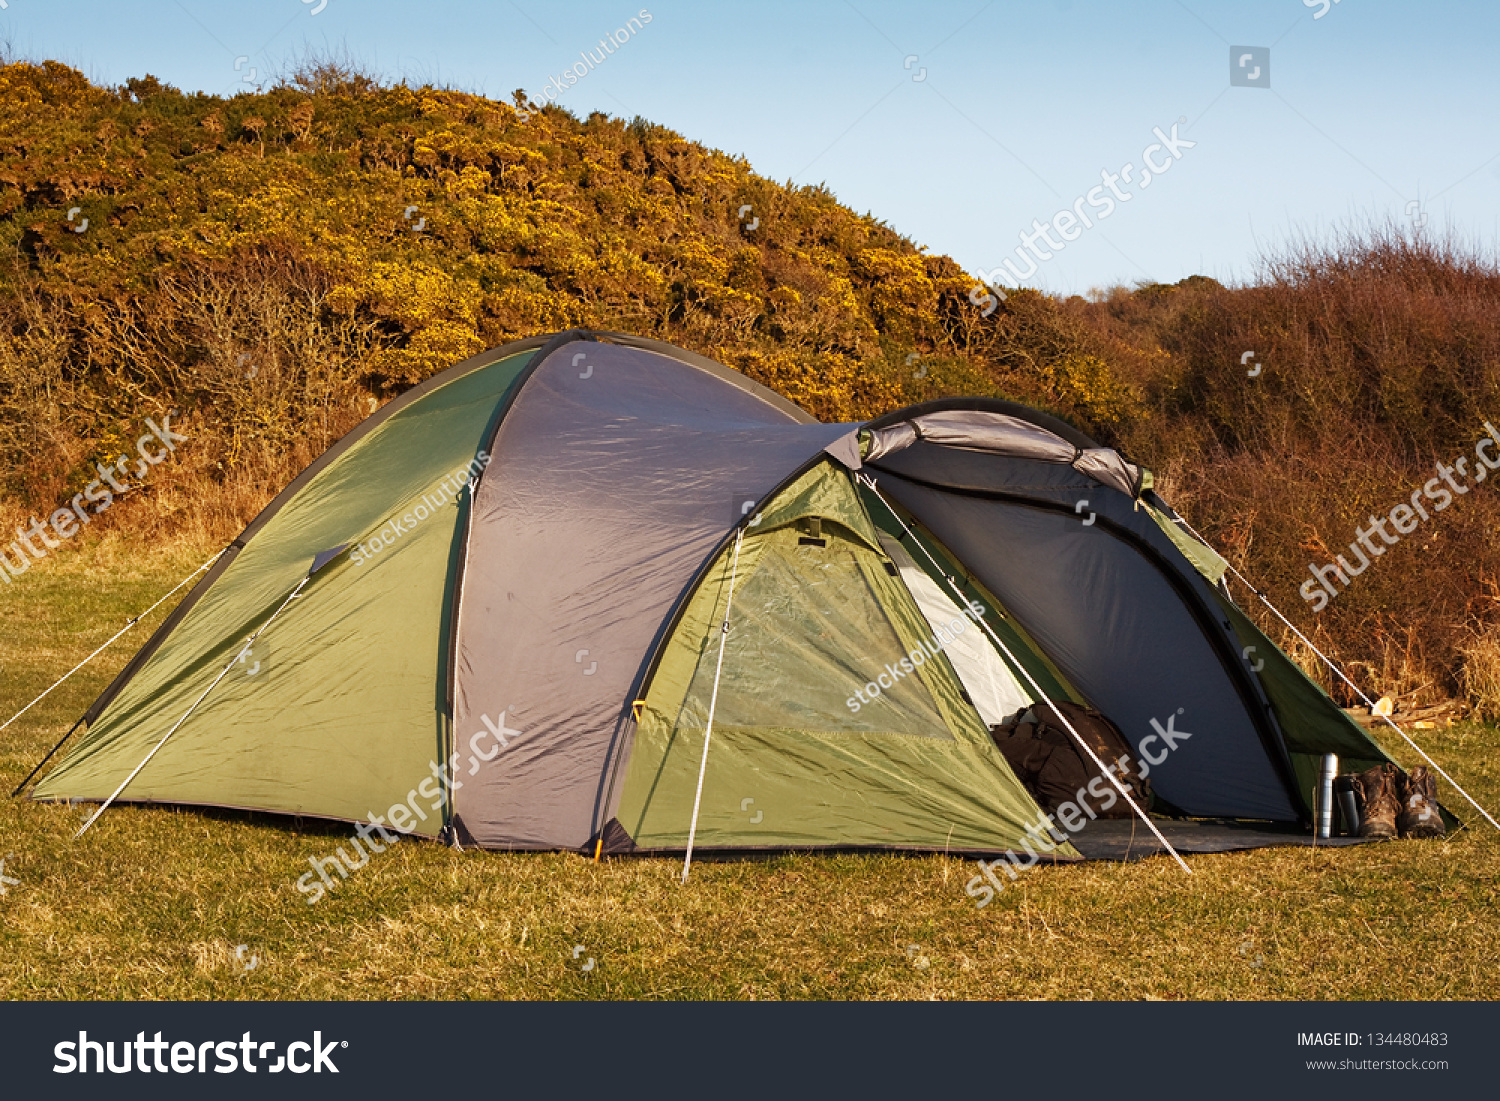 Dome Tent Pitched Field Wild C&ing Stock Photo 134480483 - Shutterstock & Dome Tent Pitched Field Wild Camping Stock Photo 134480483 ...